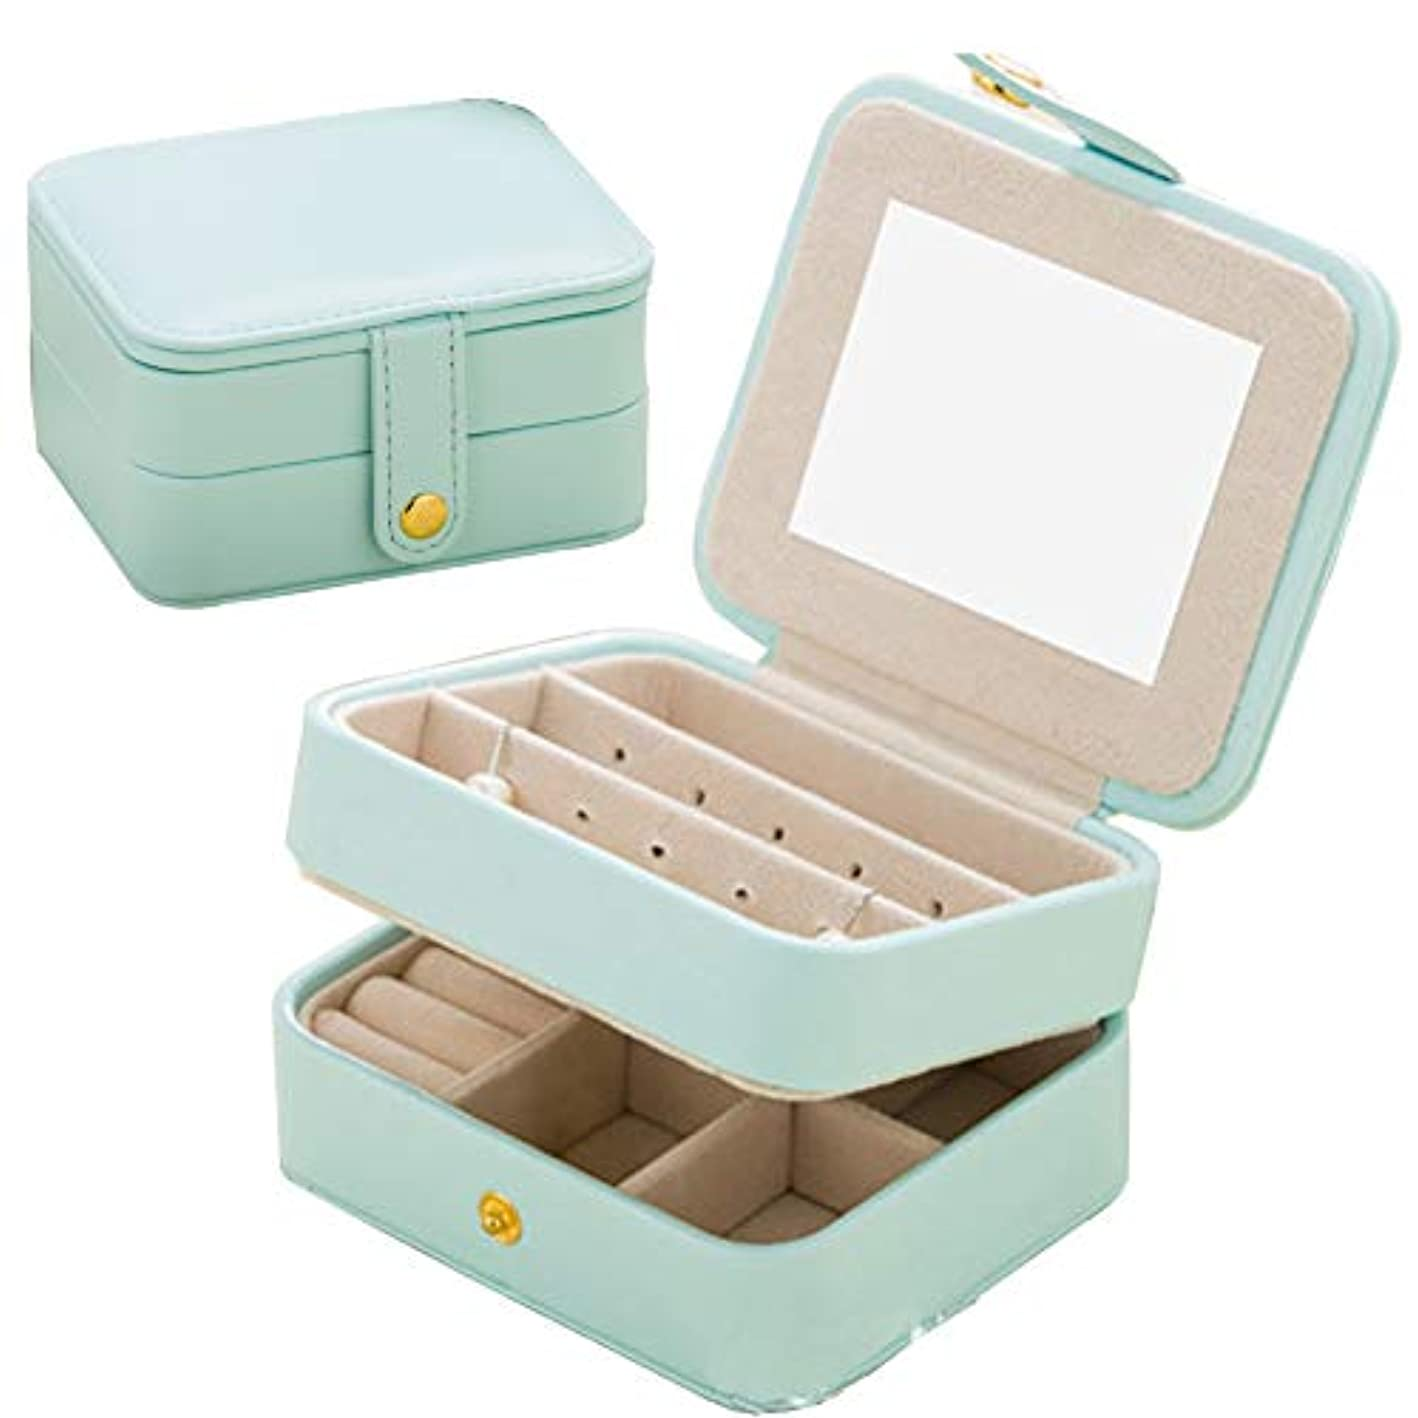 Naswei Travel Jewelry Organizer Box Portable Jewelry Storage Case Accessories Holder Pouch Bulit-in Mirror with Environmental Faux Leather for Earring,Lipstick,Necklace,Bracelet,Rings Light Blue